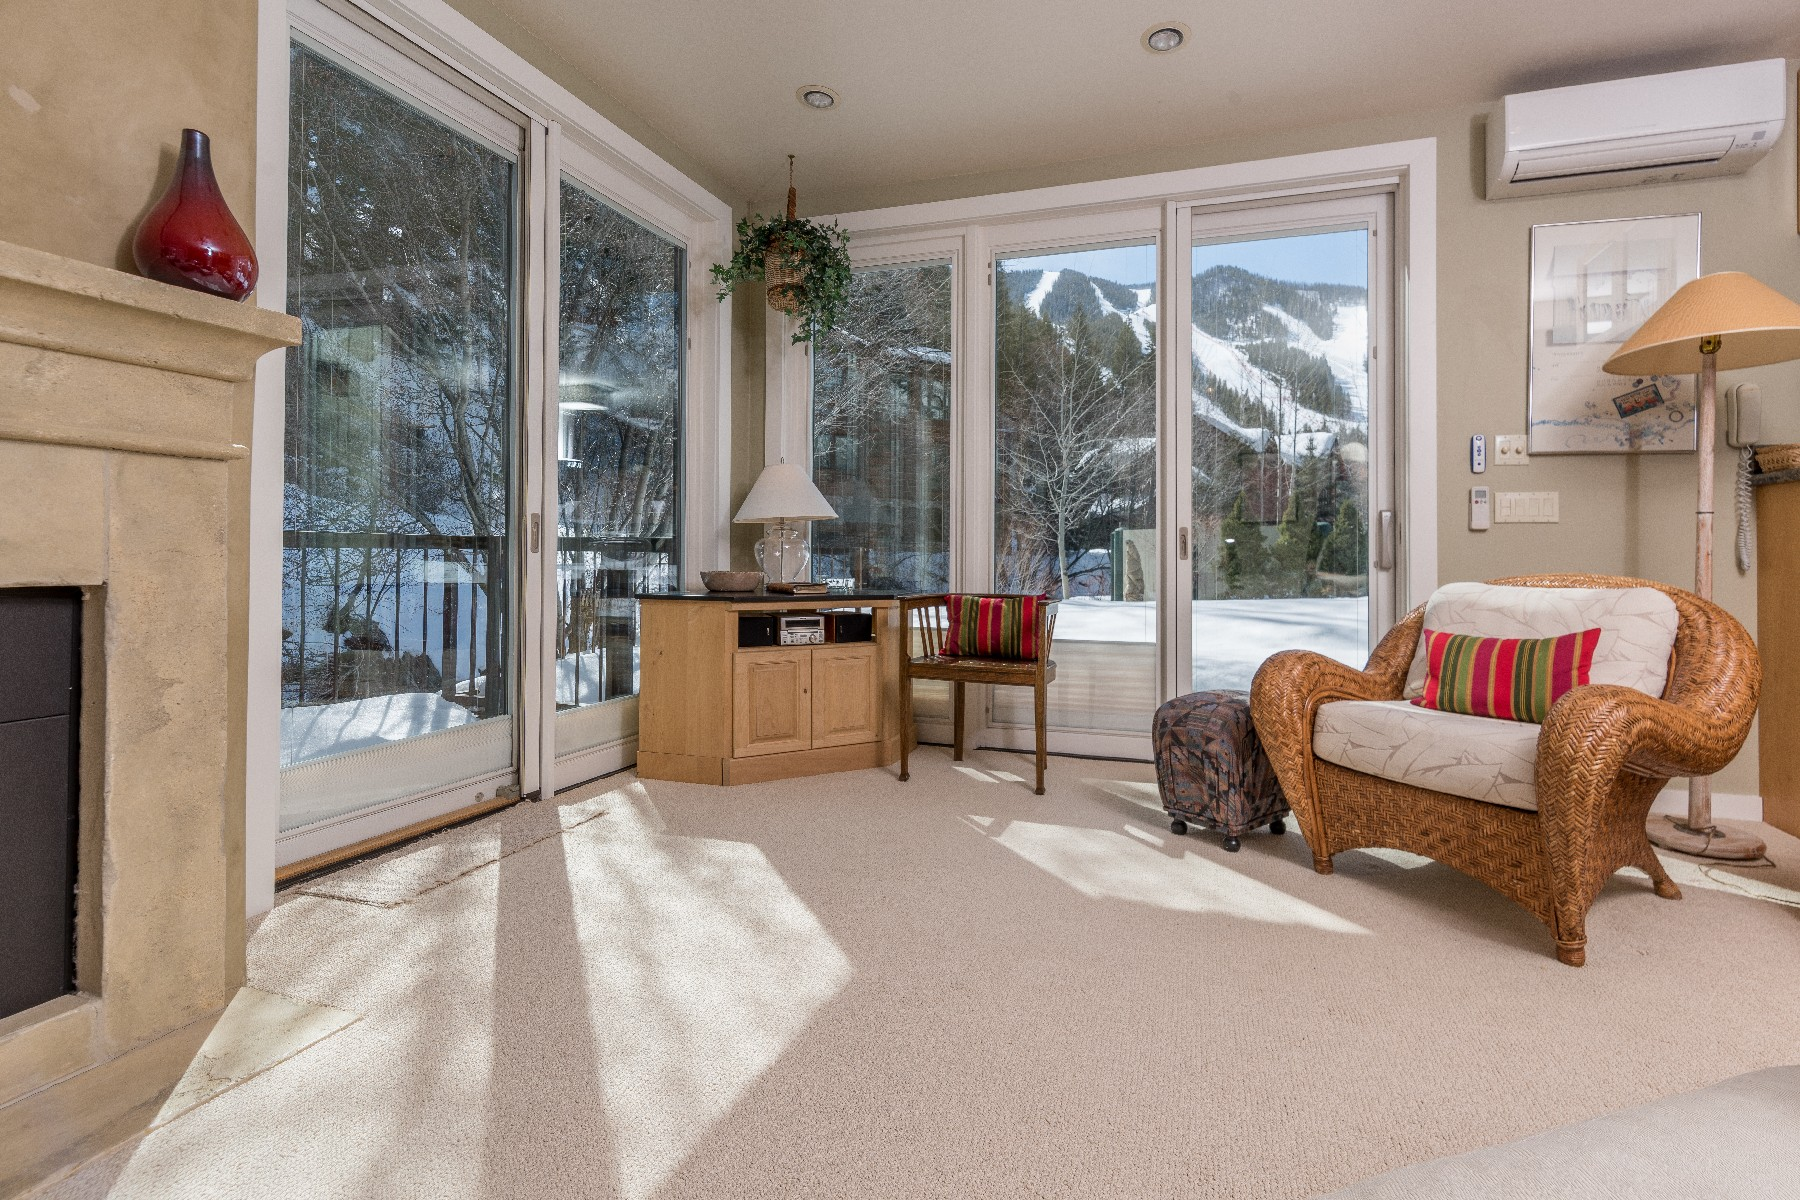 Condominiums for Sale at Creek-Side At The Base Of Baldy 315 Skiway Dr #115 Ketchum, Idaho 83340 United States